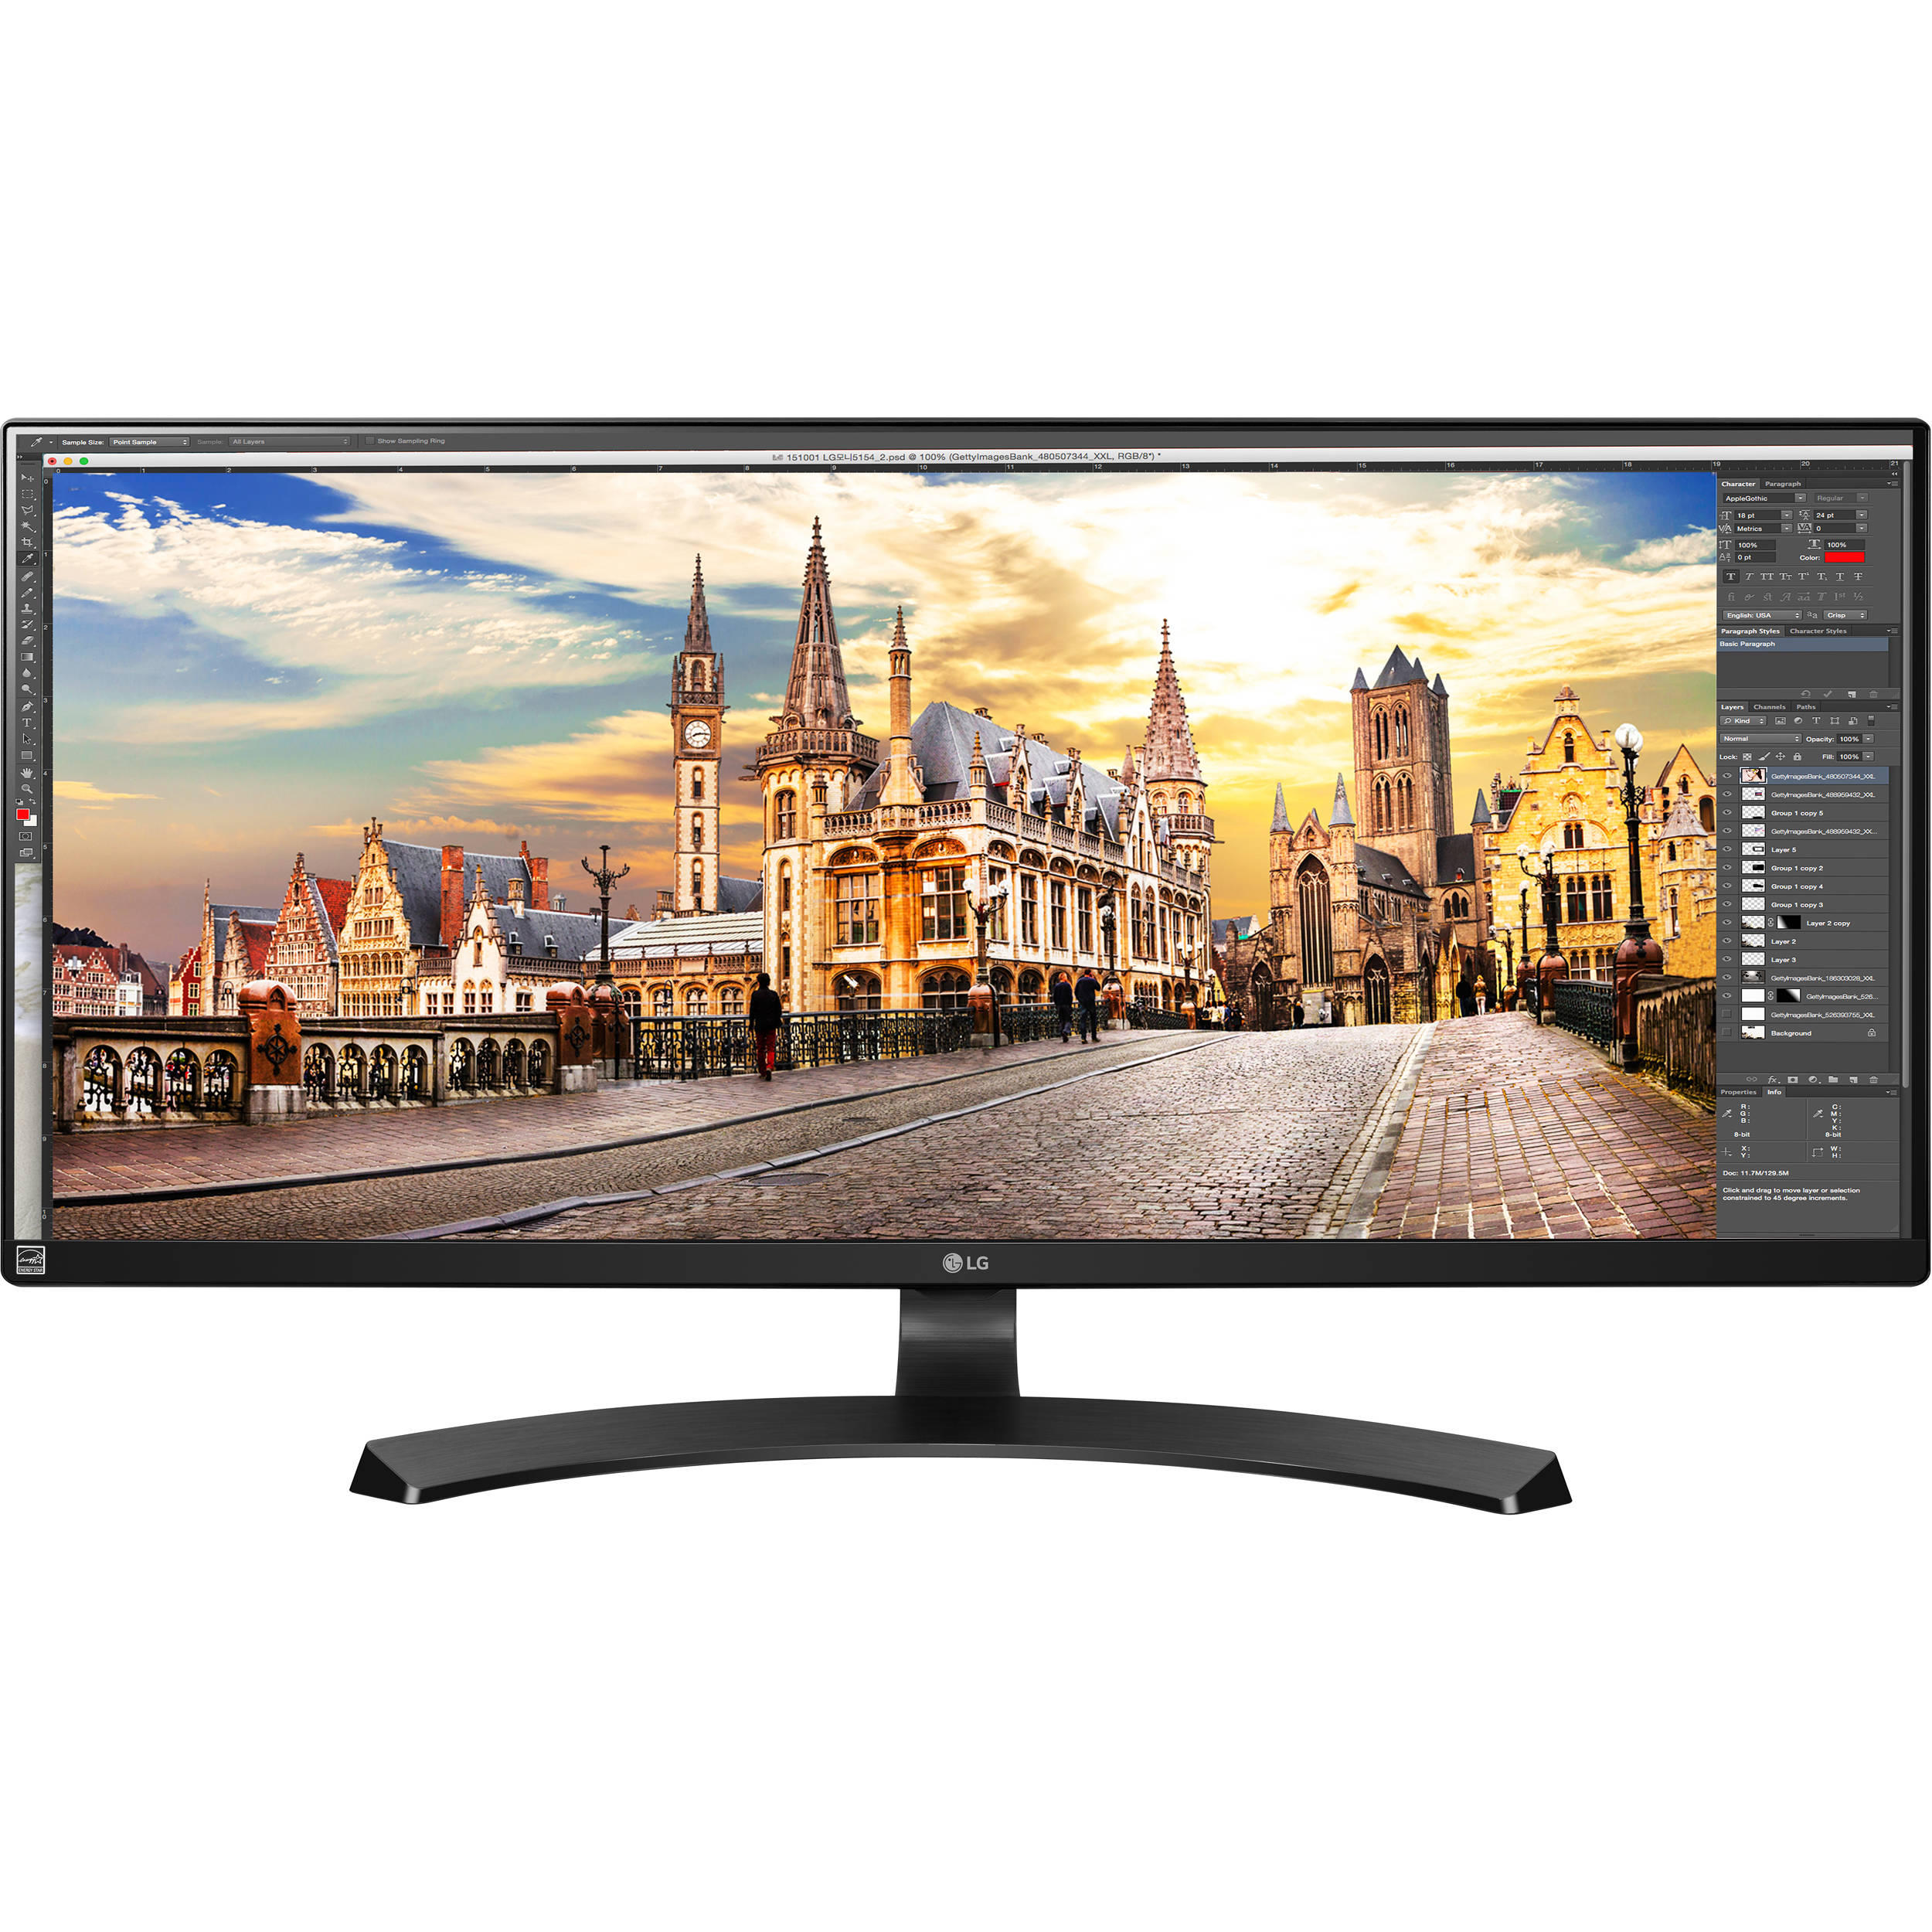 $334.99 Free Shipping/No Tax LG Electronics 34